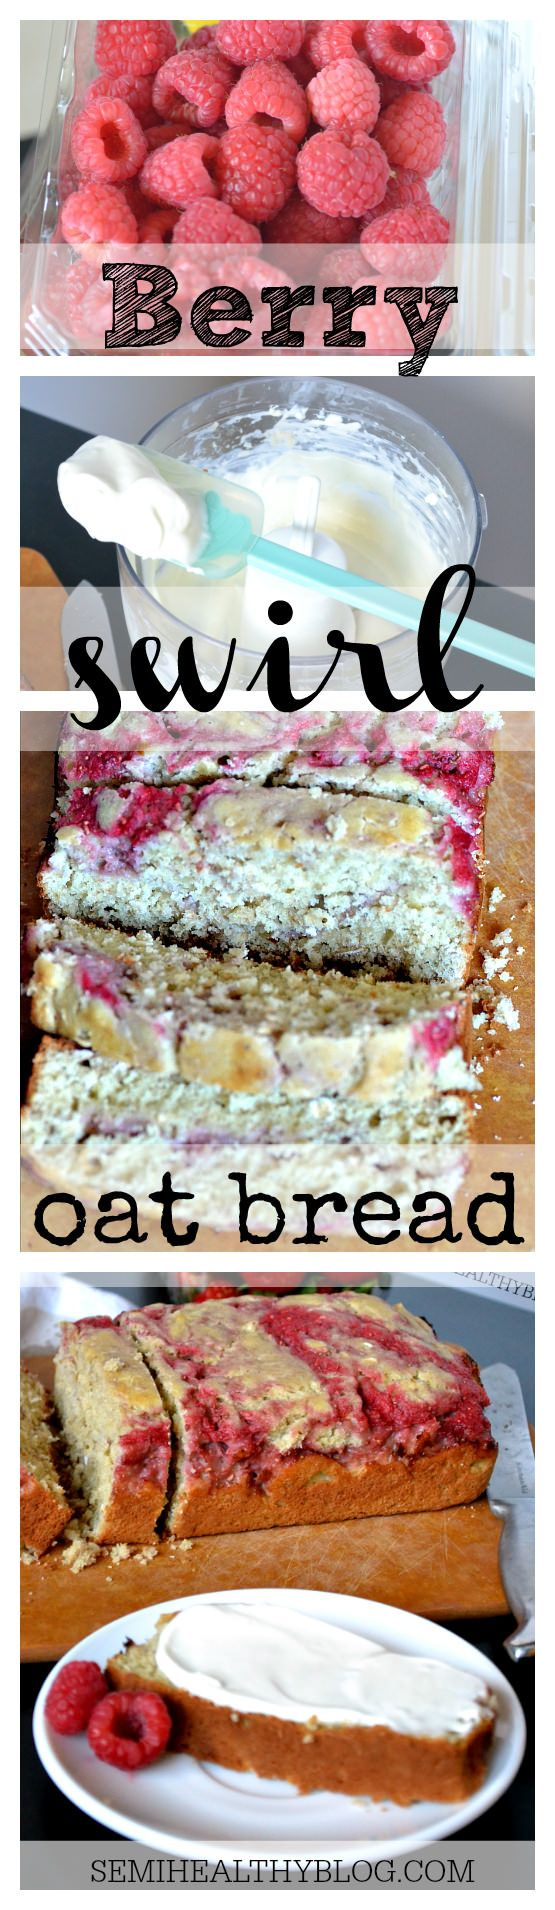 berry swirl oat bread with whipped goat cheese collage via @semihealthyblog.com